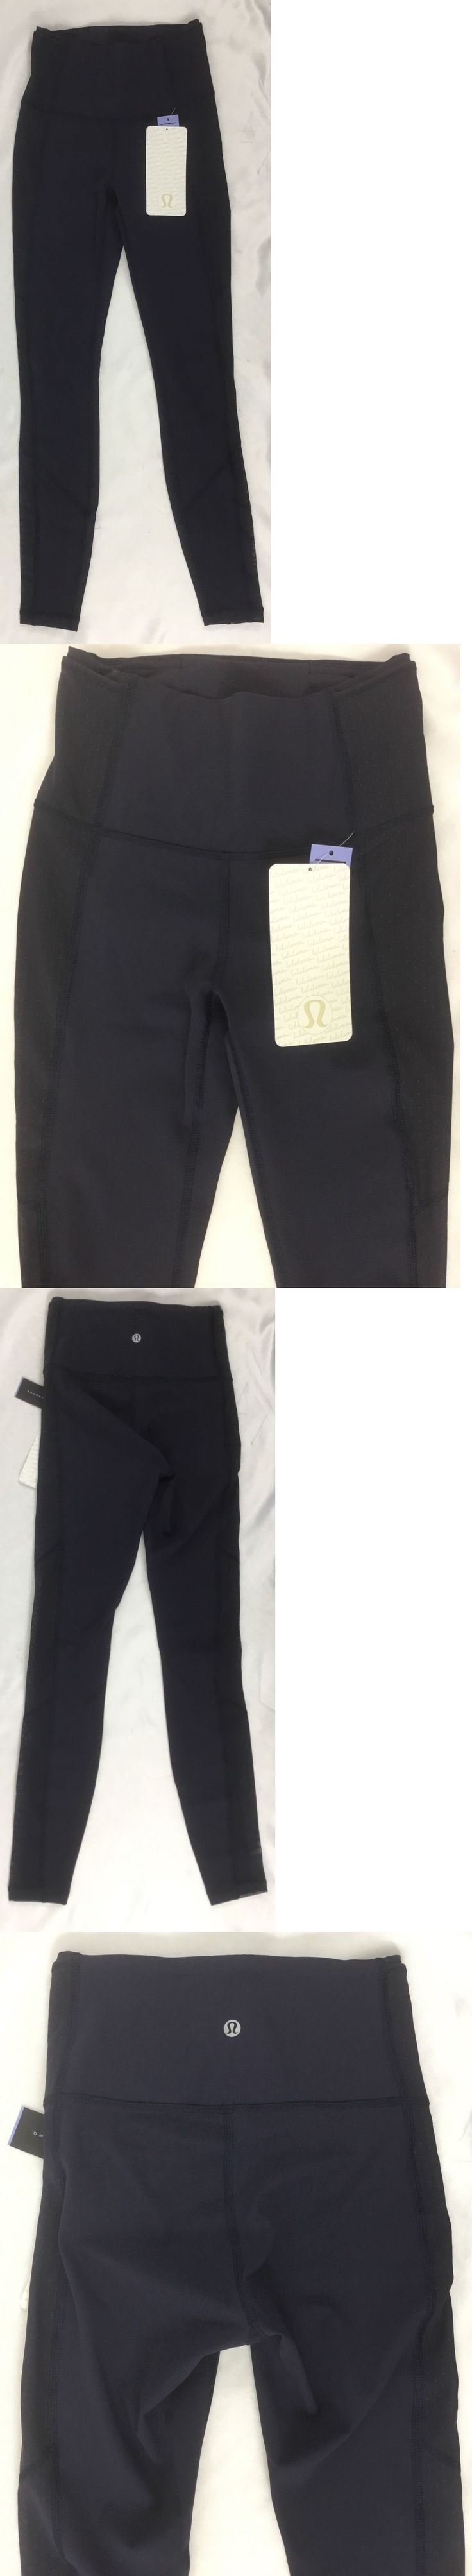 Pants 59280: Lululemon Women S Body Con Tight High Rise Leggings Luxtreme Navy Blue Size 12 -> BUY IT NOW ONLY: $74.99 on eBay!